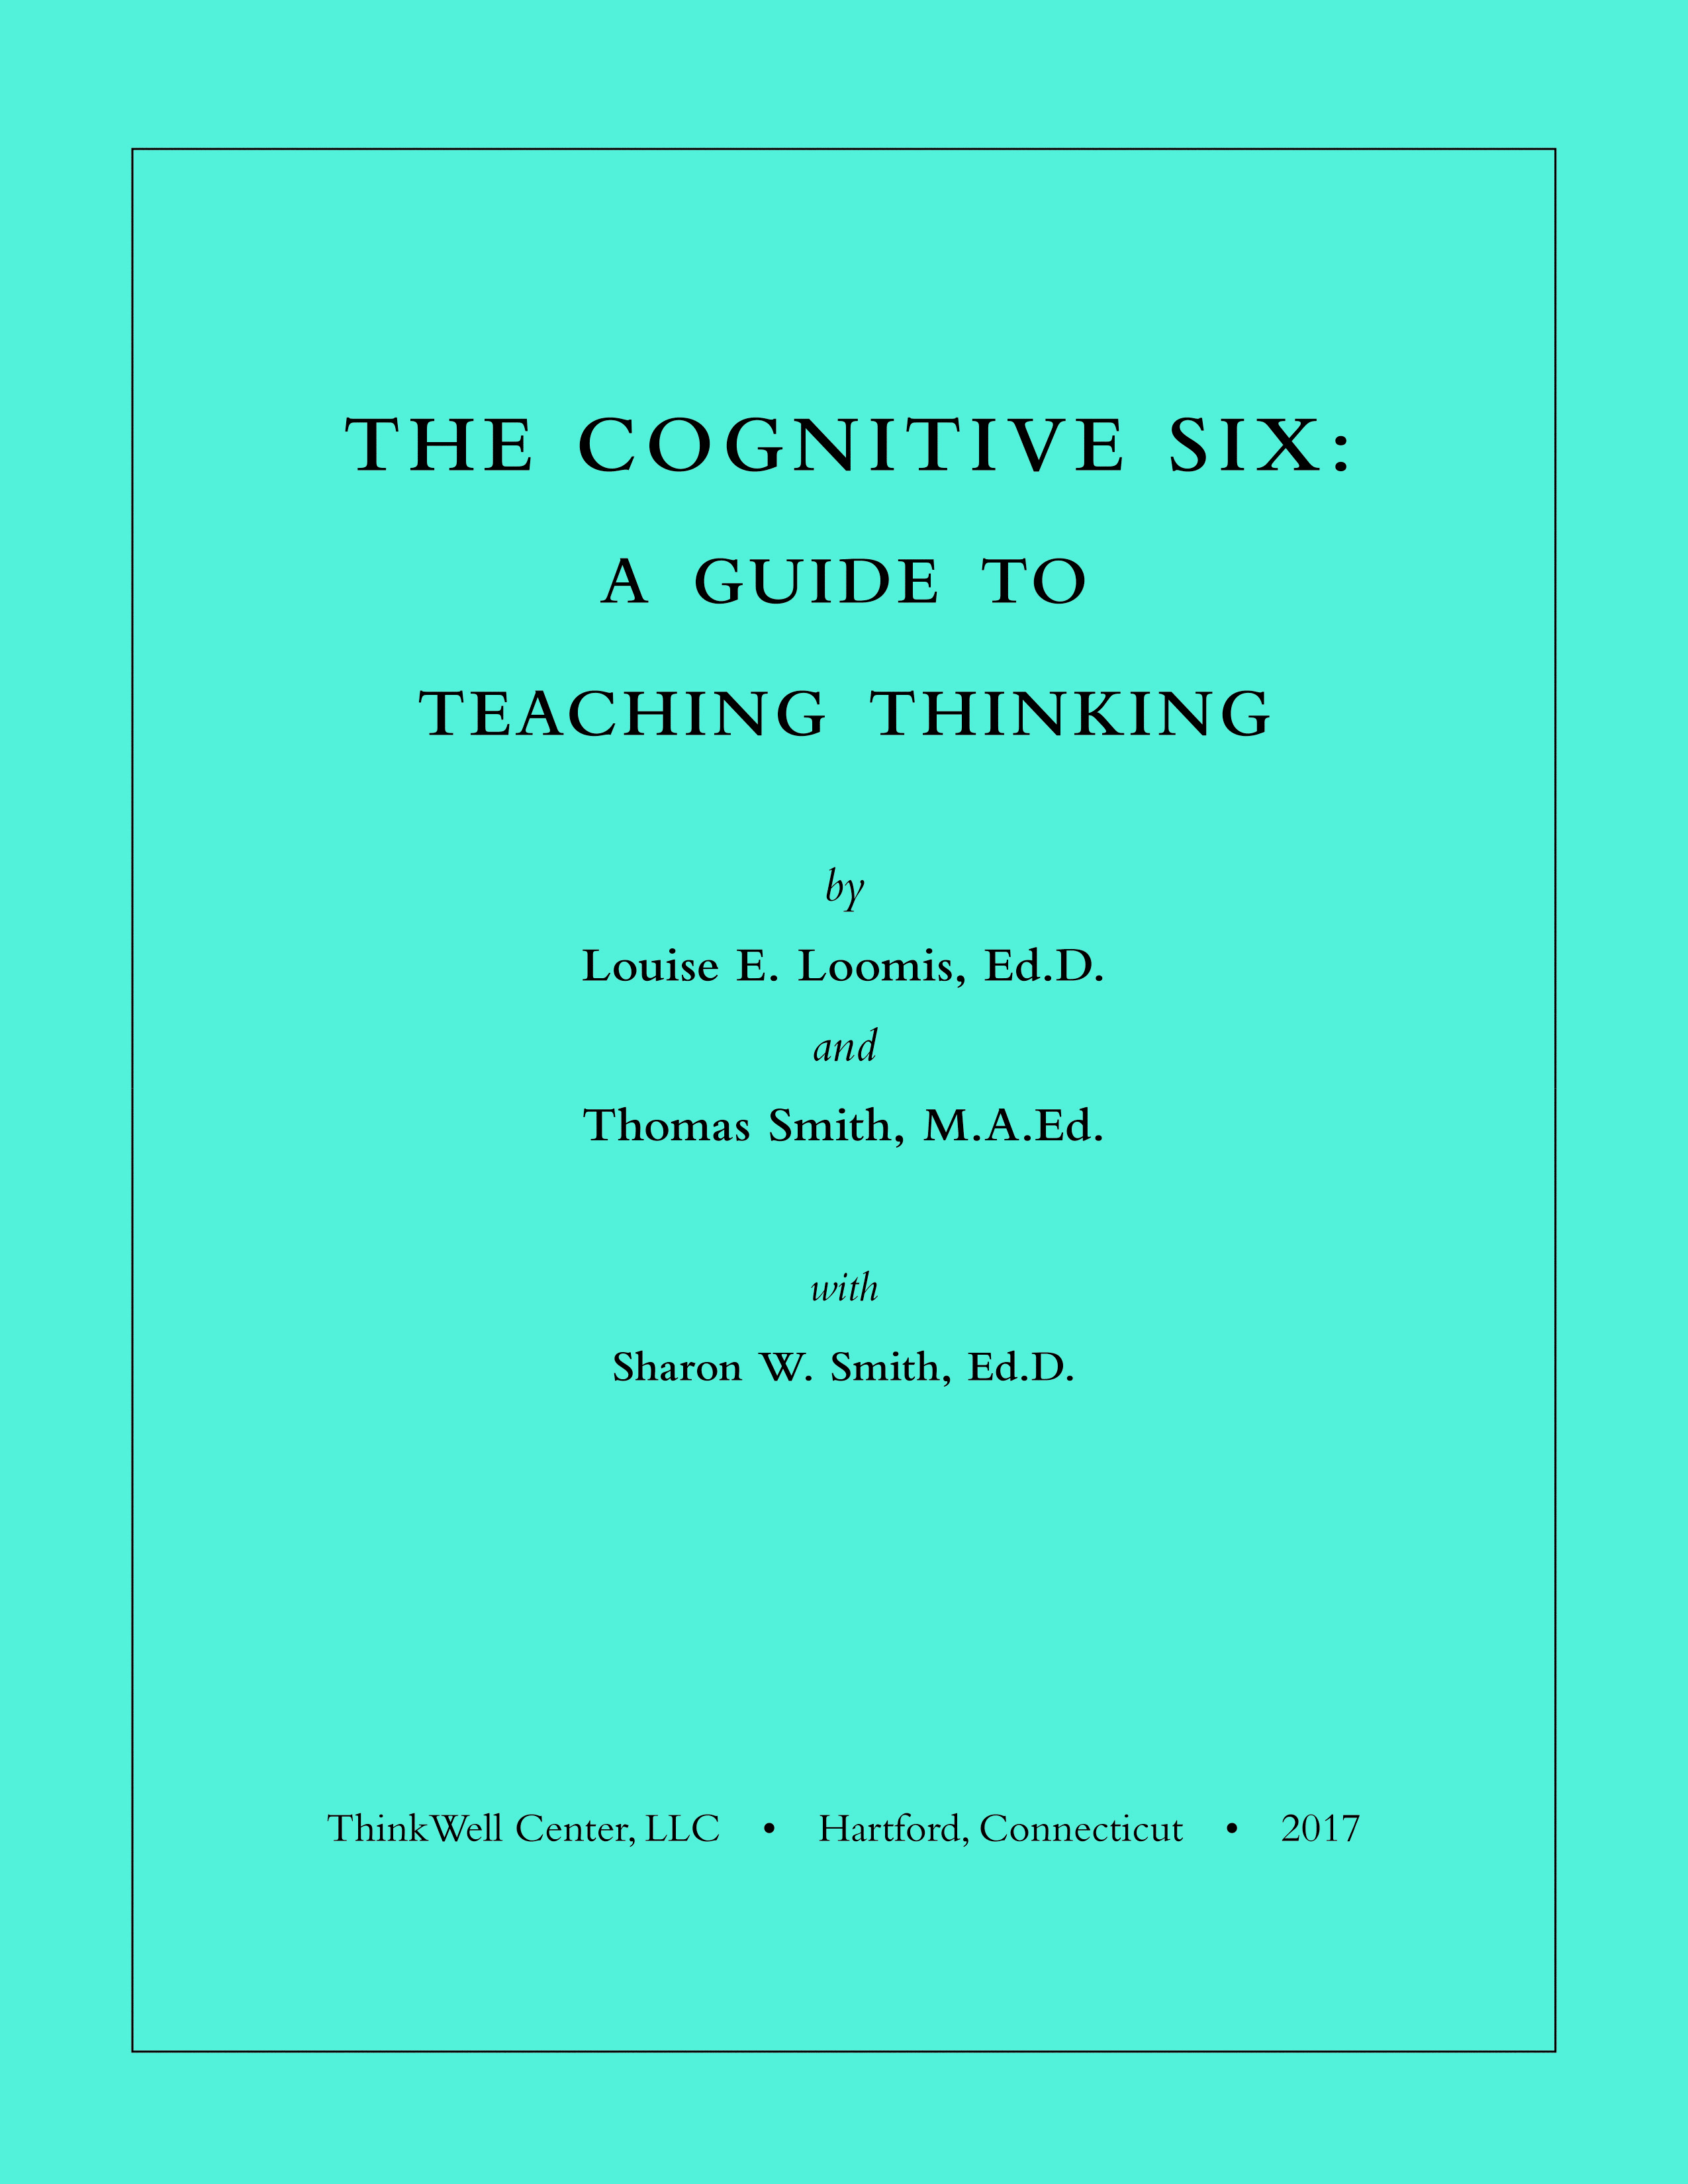 cognitive six bookcover